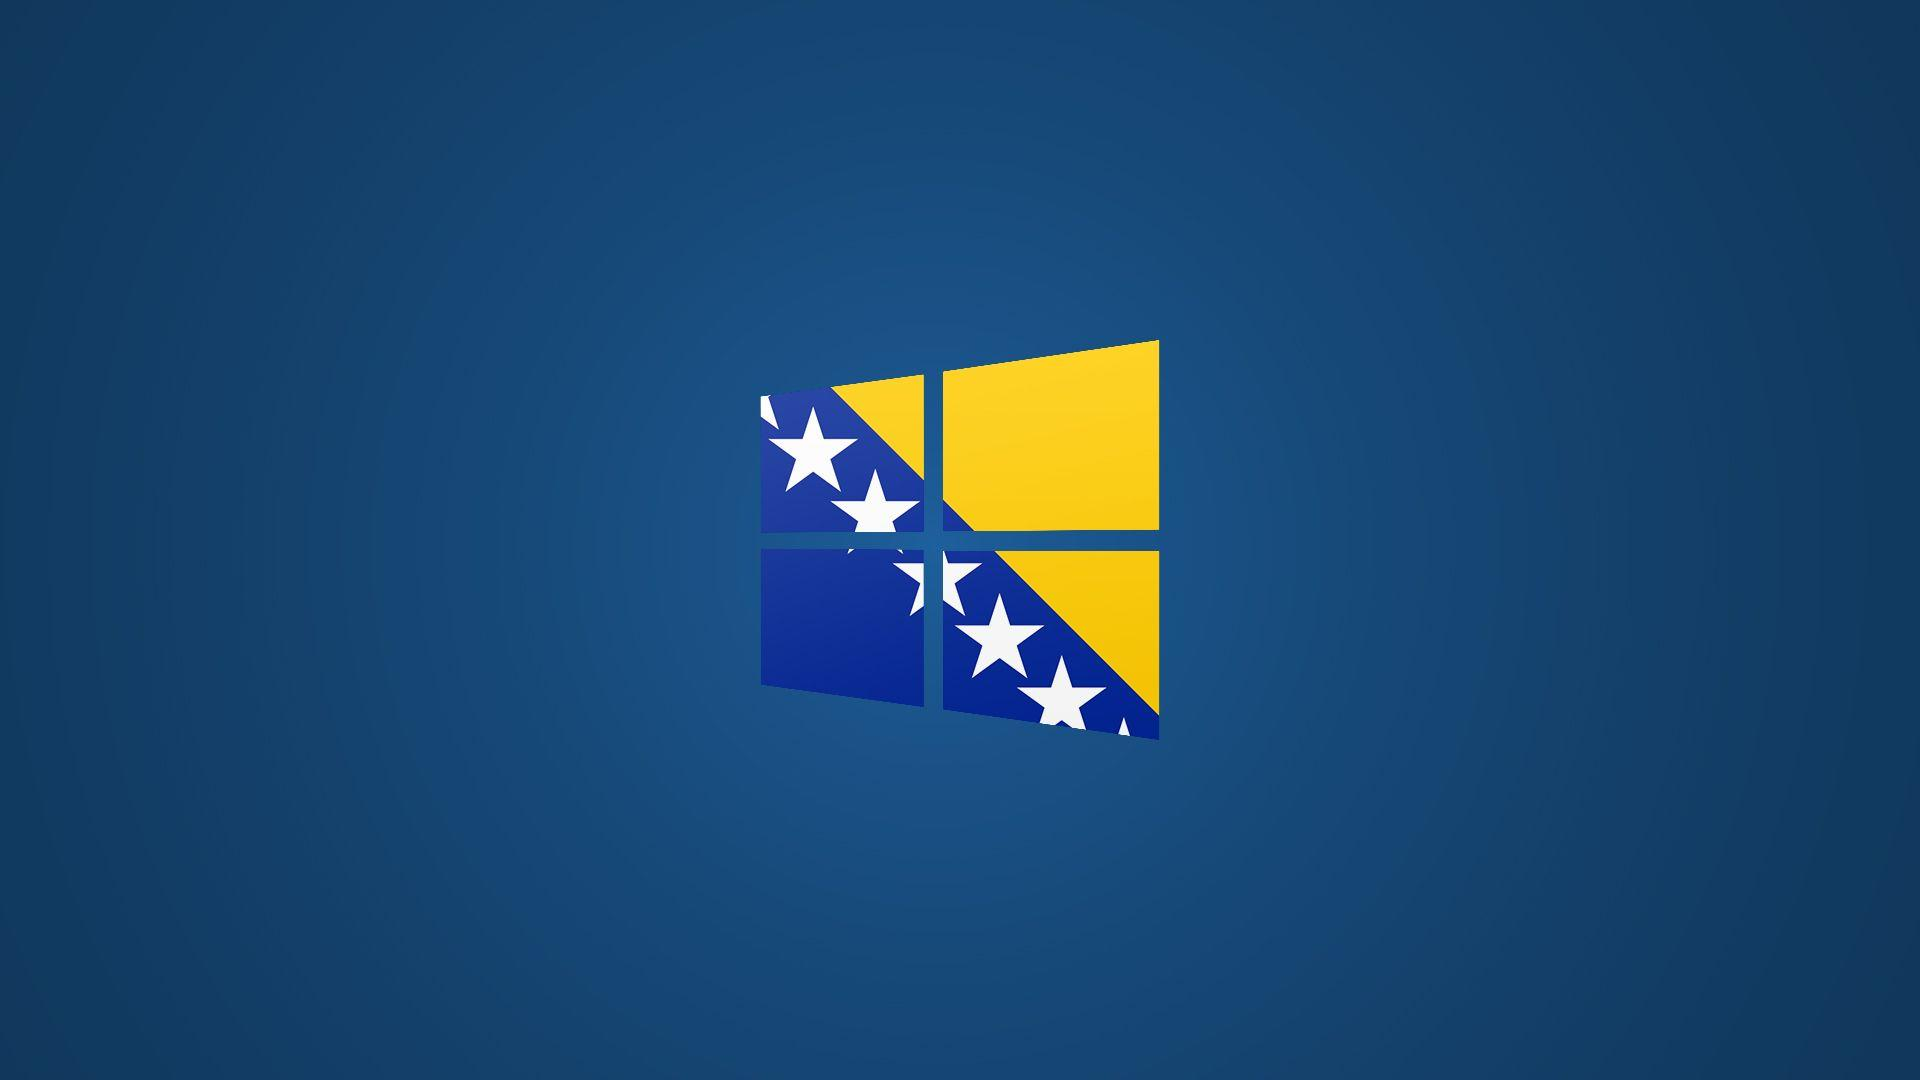 Windows 8 Bosnian Flag Logo Wallpaper (Blue) by Edinev on DeviantArt